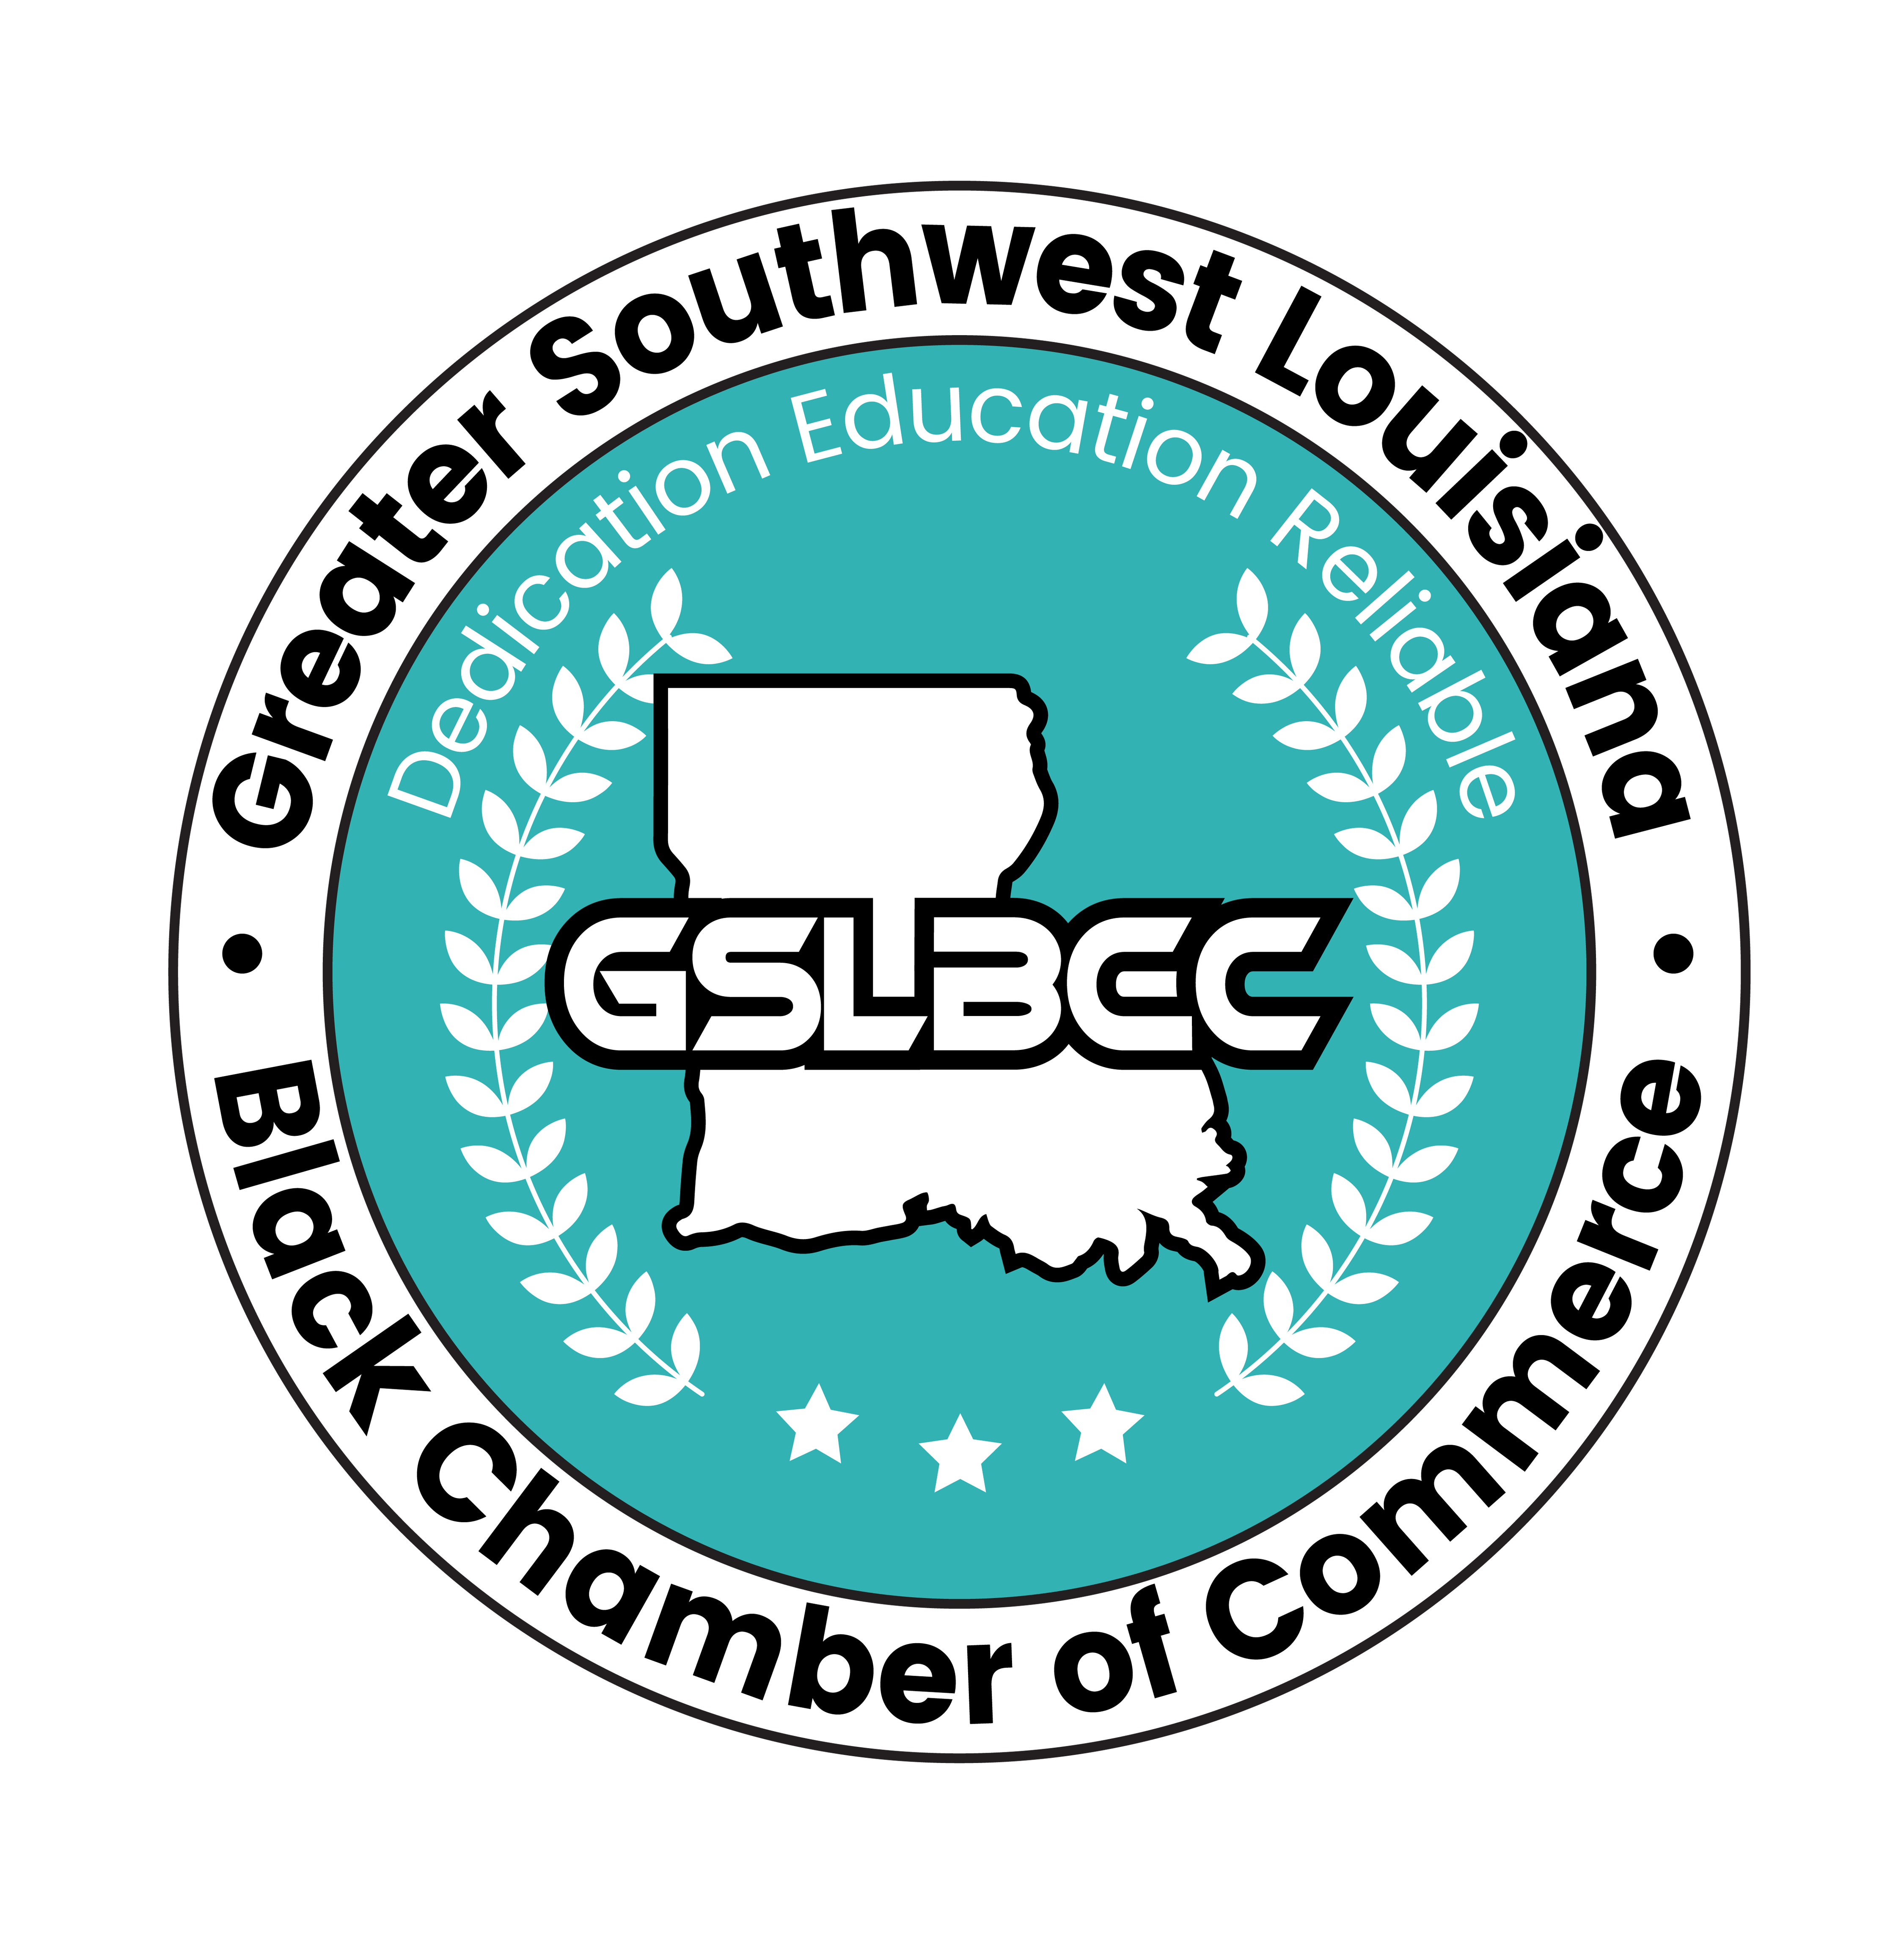 GSLBCC